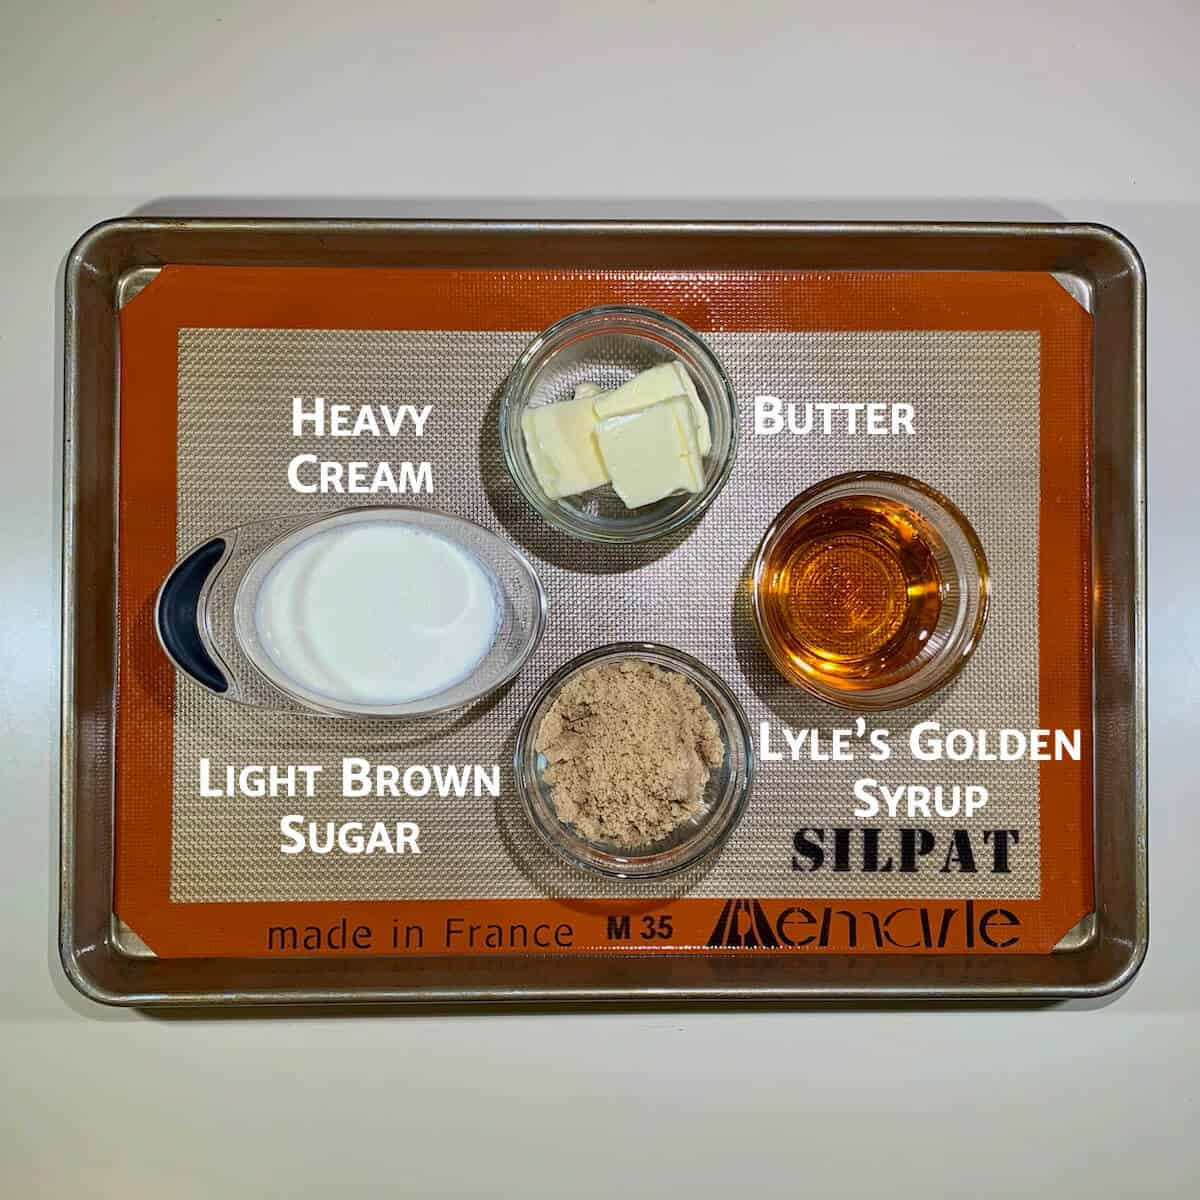 Toffee sauce ingredients portioned in glass bowls on a baking pan.